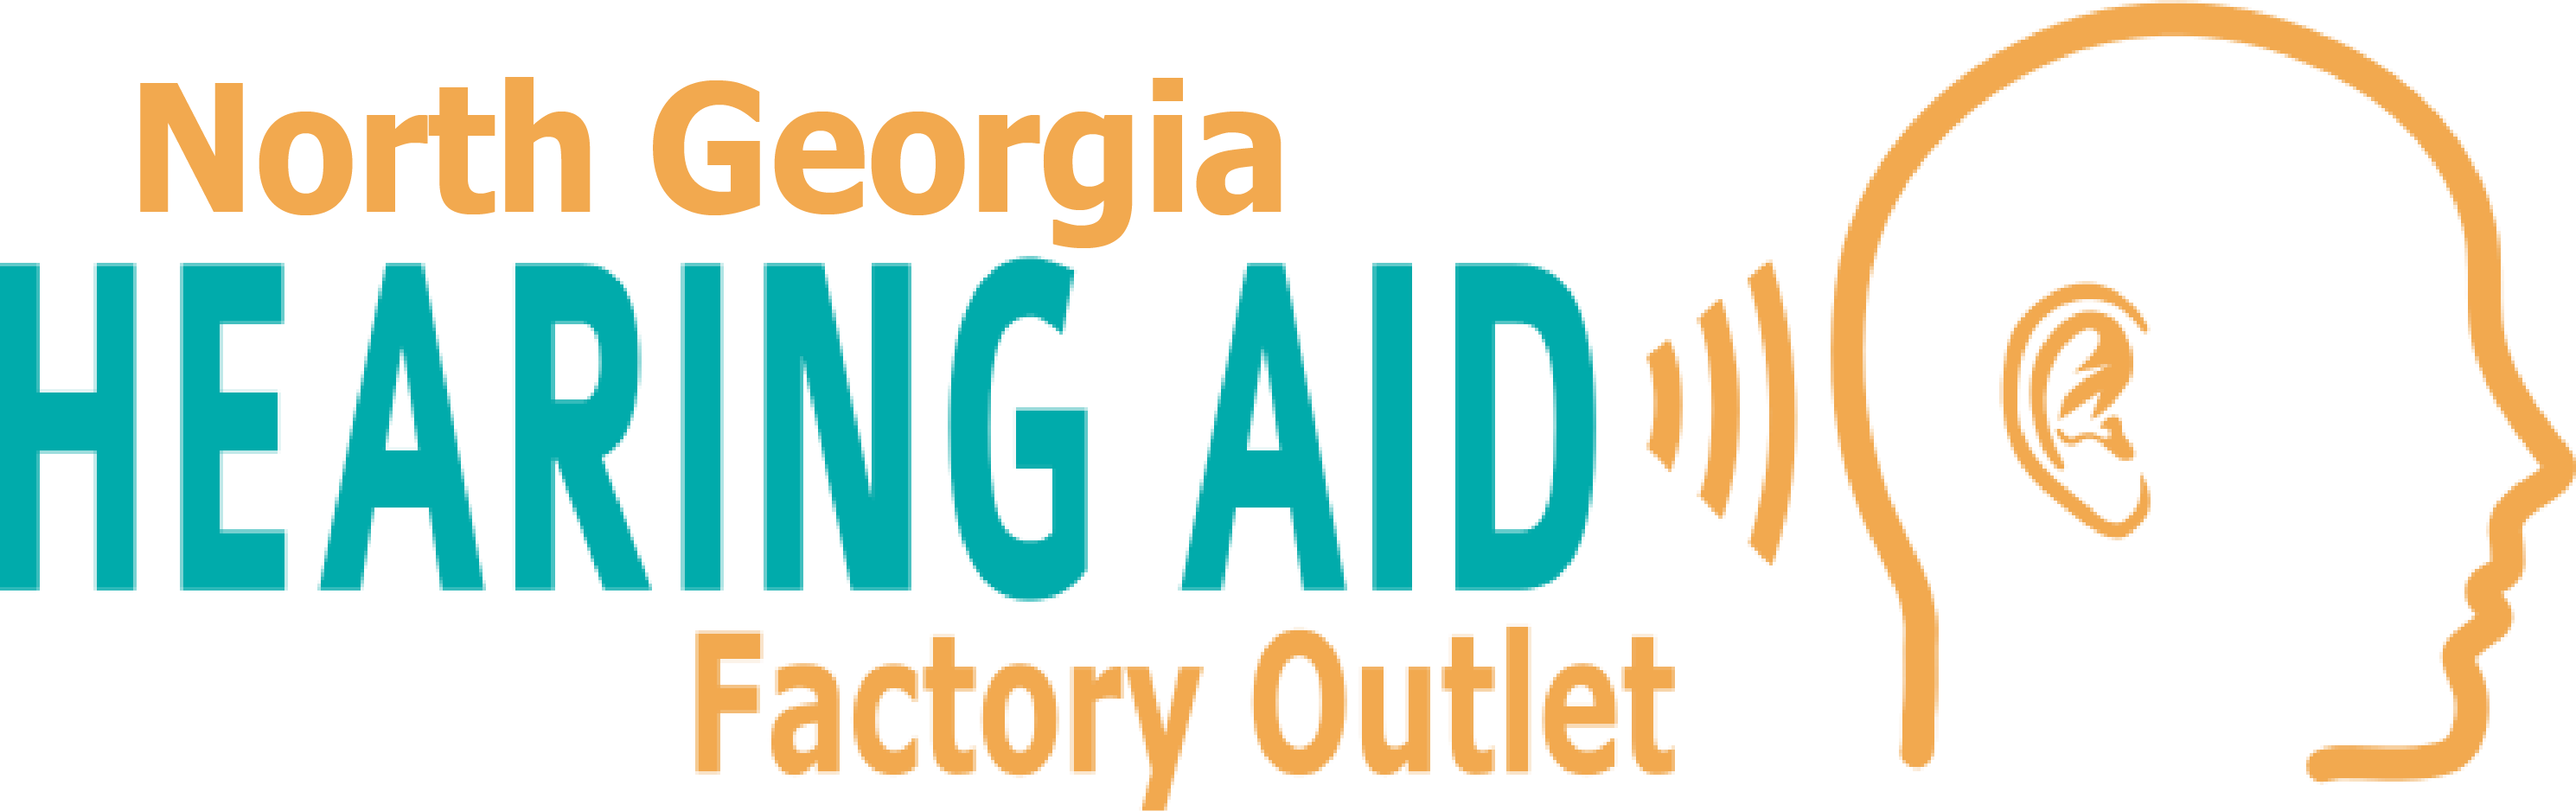 North georgia hearing aid logo %281%29